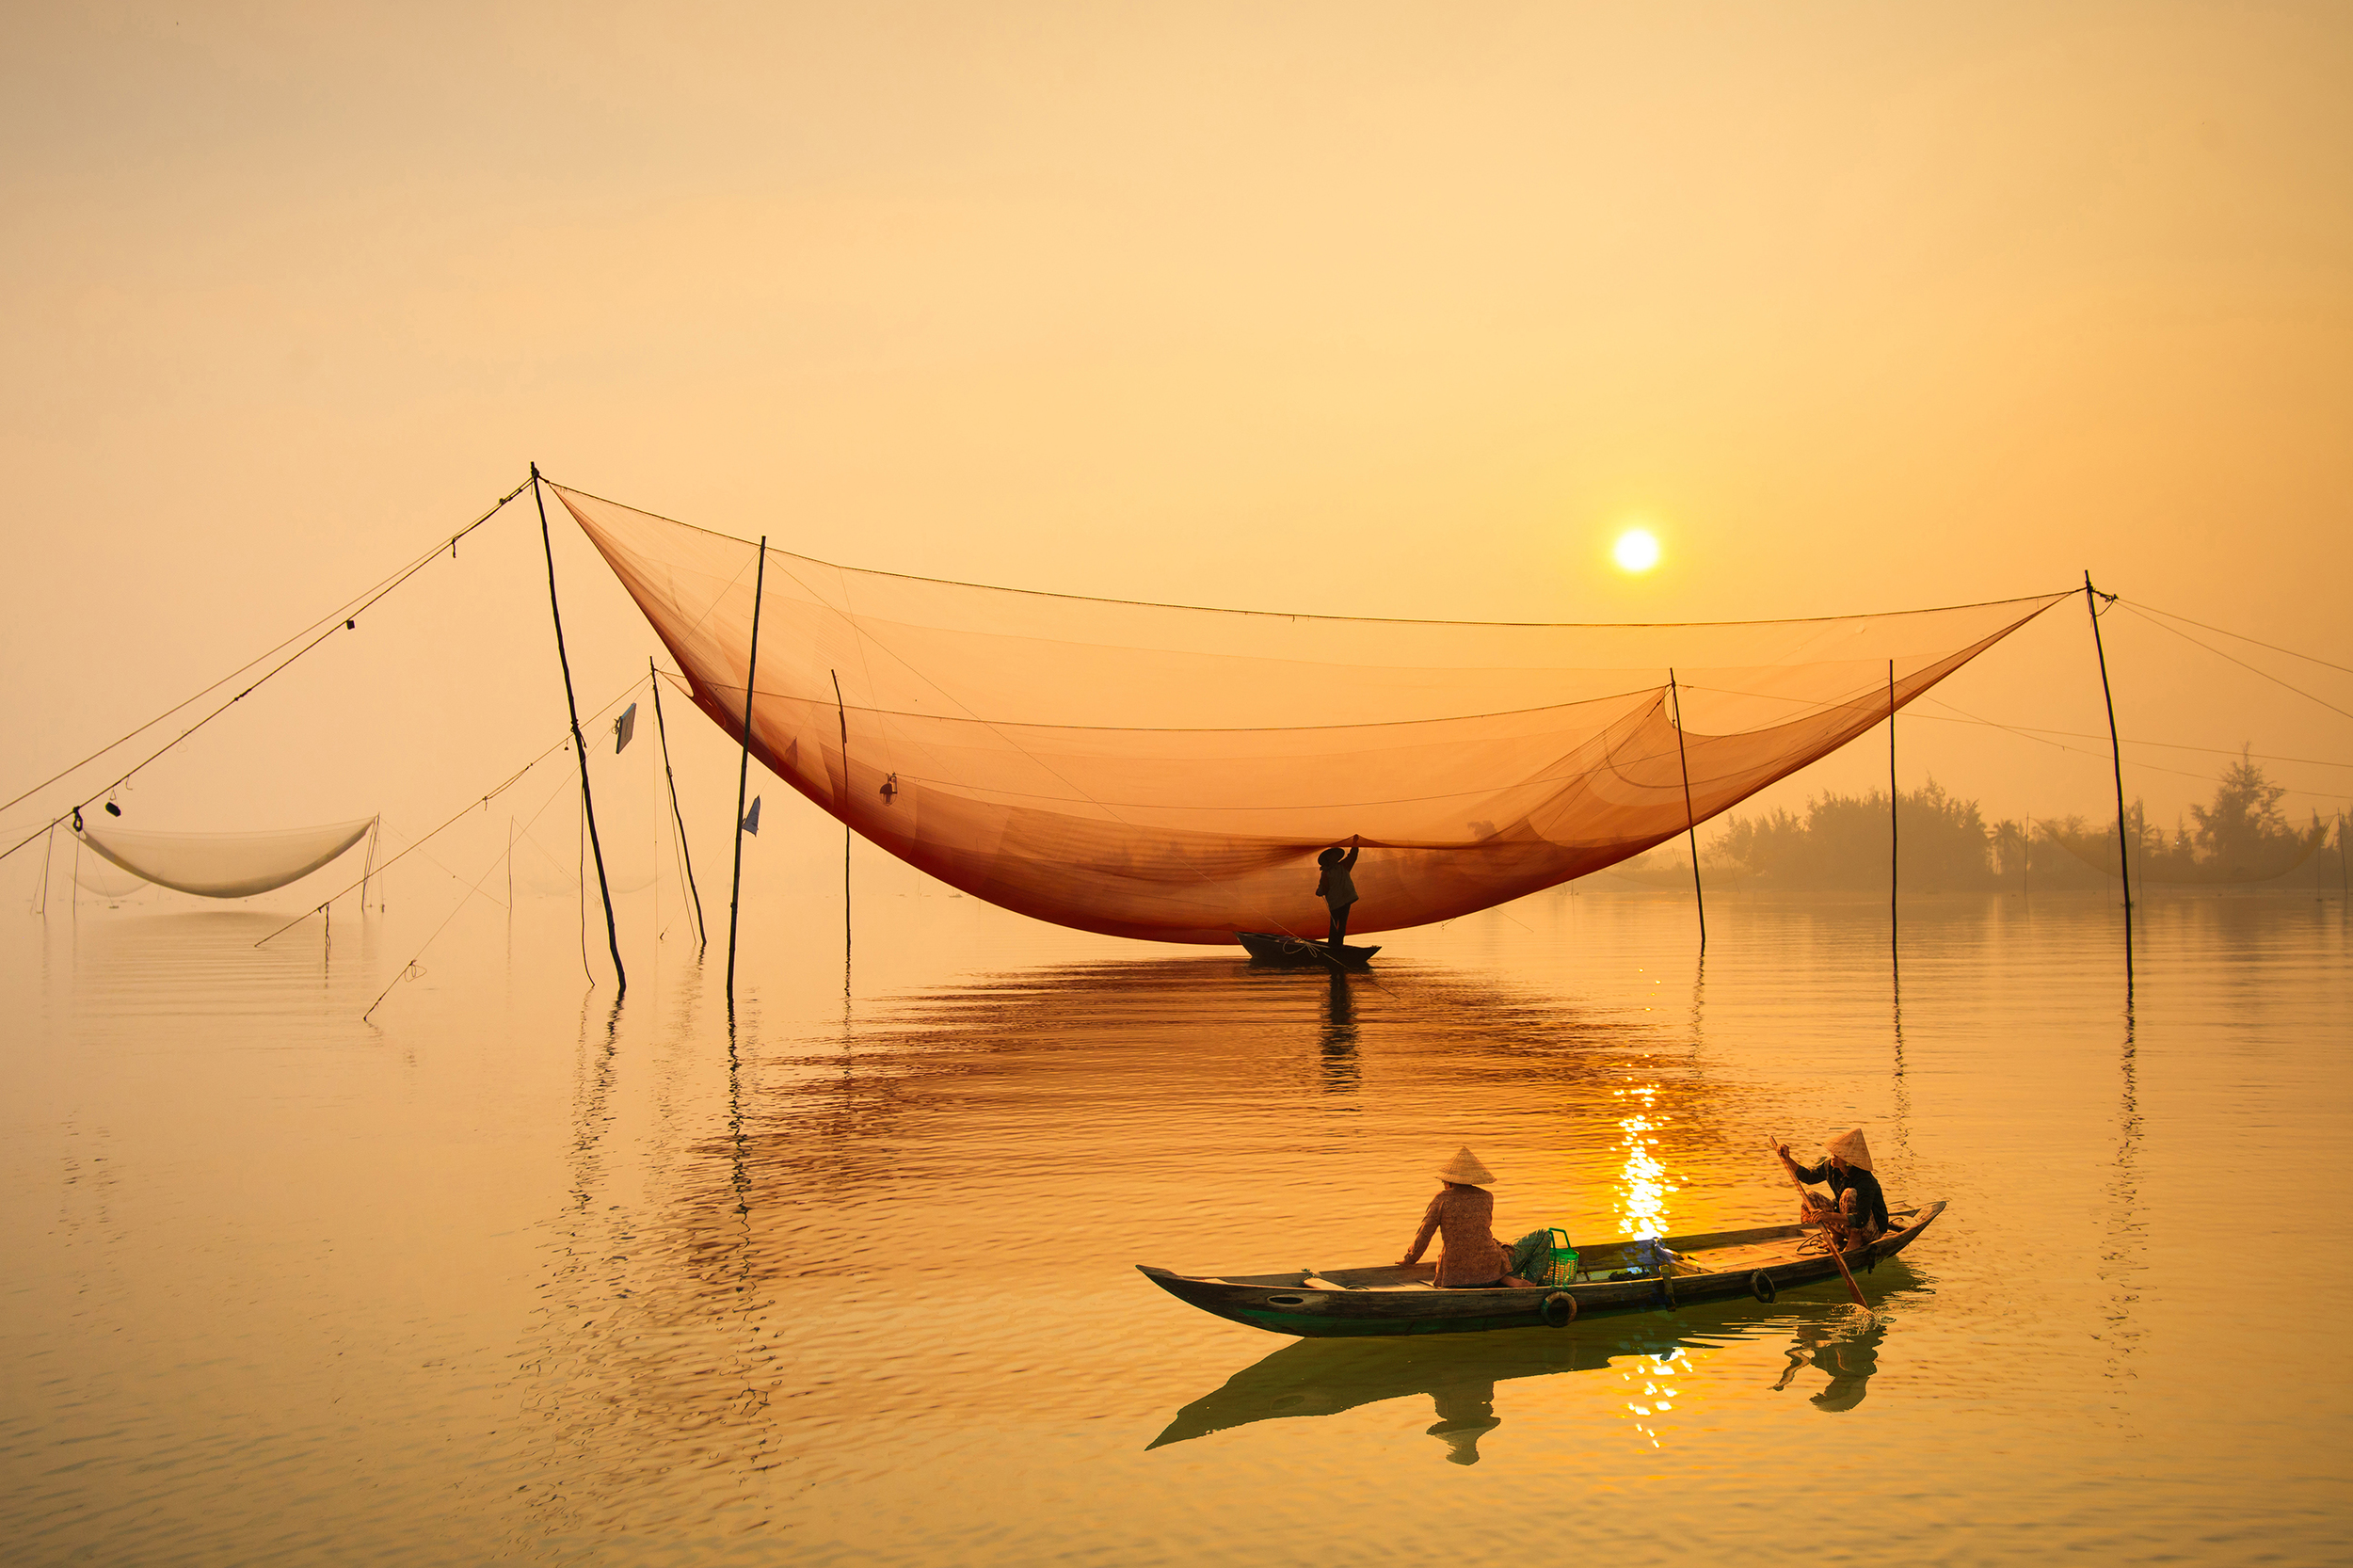 Two local people fishing from a canoe at sunset